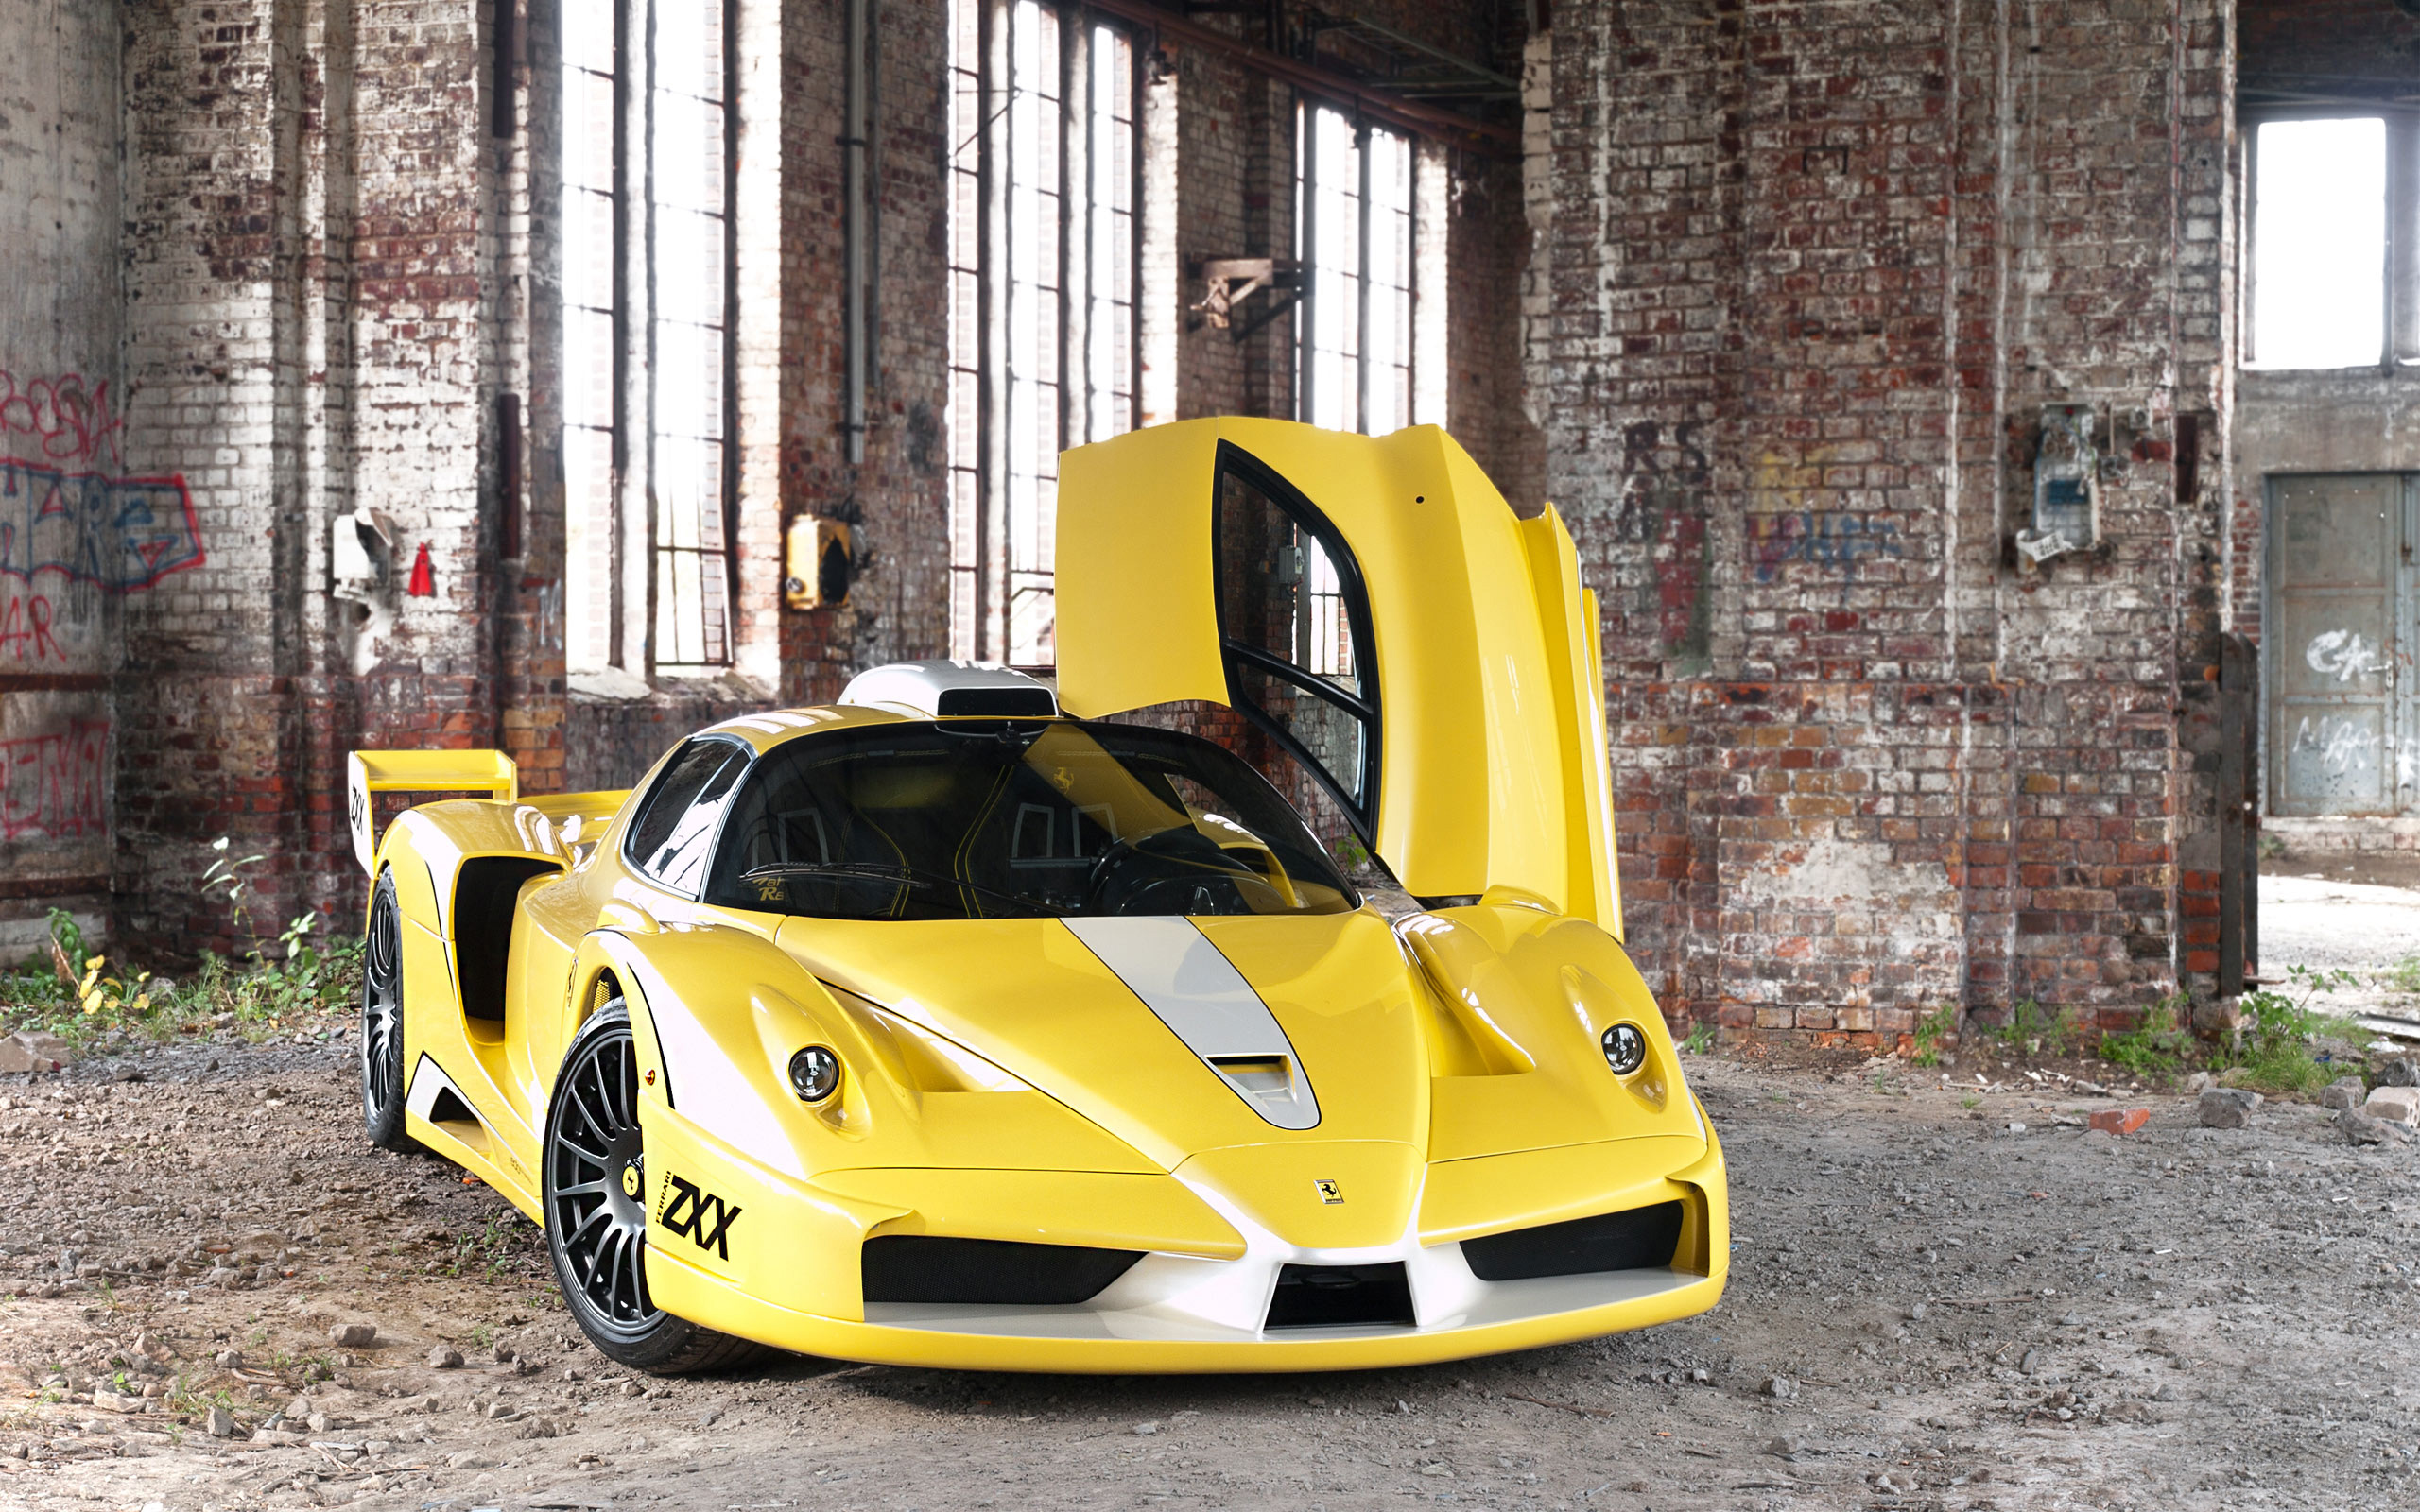 ferrari-enzo-edo-wallpaper-wp5007461